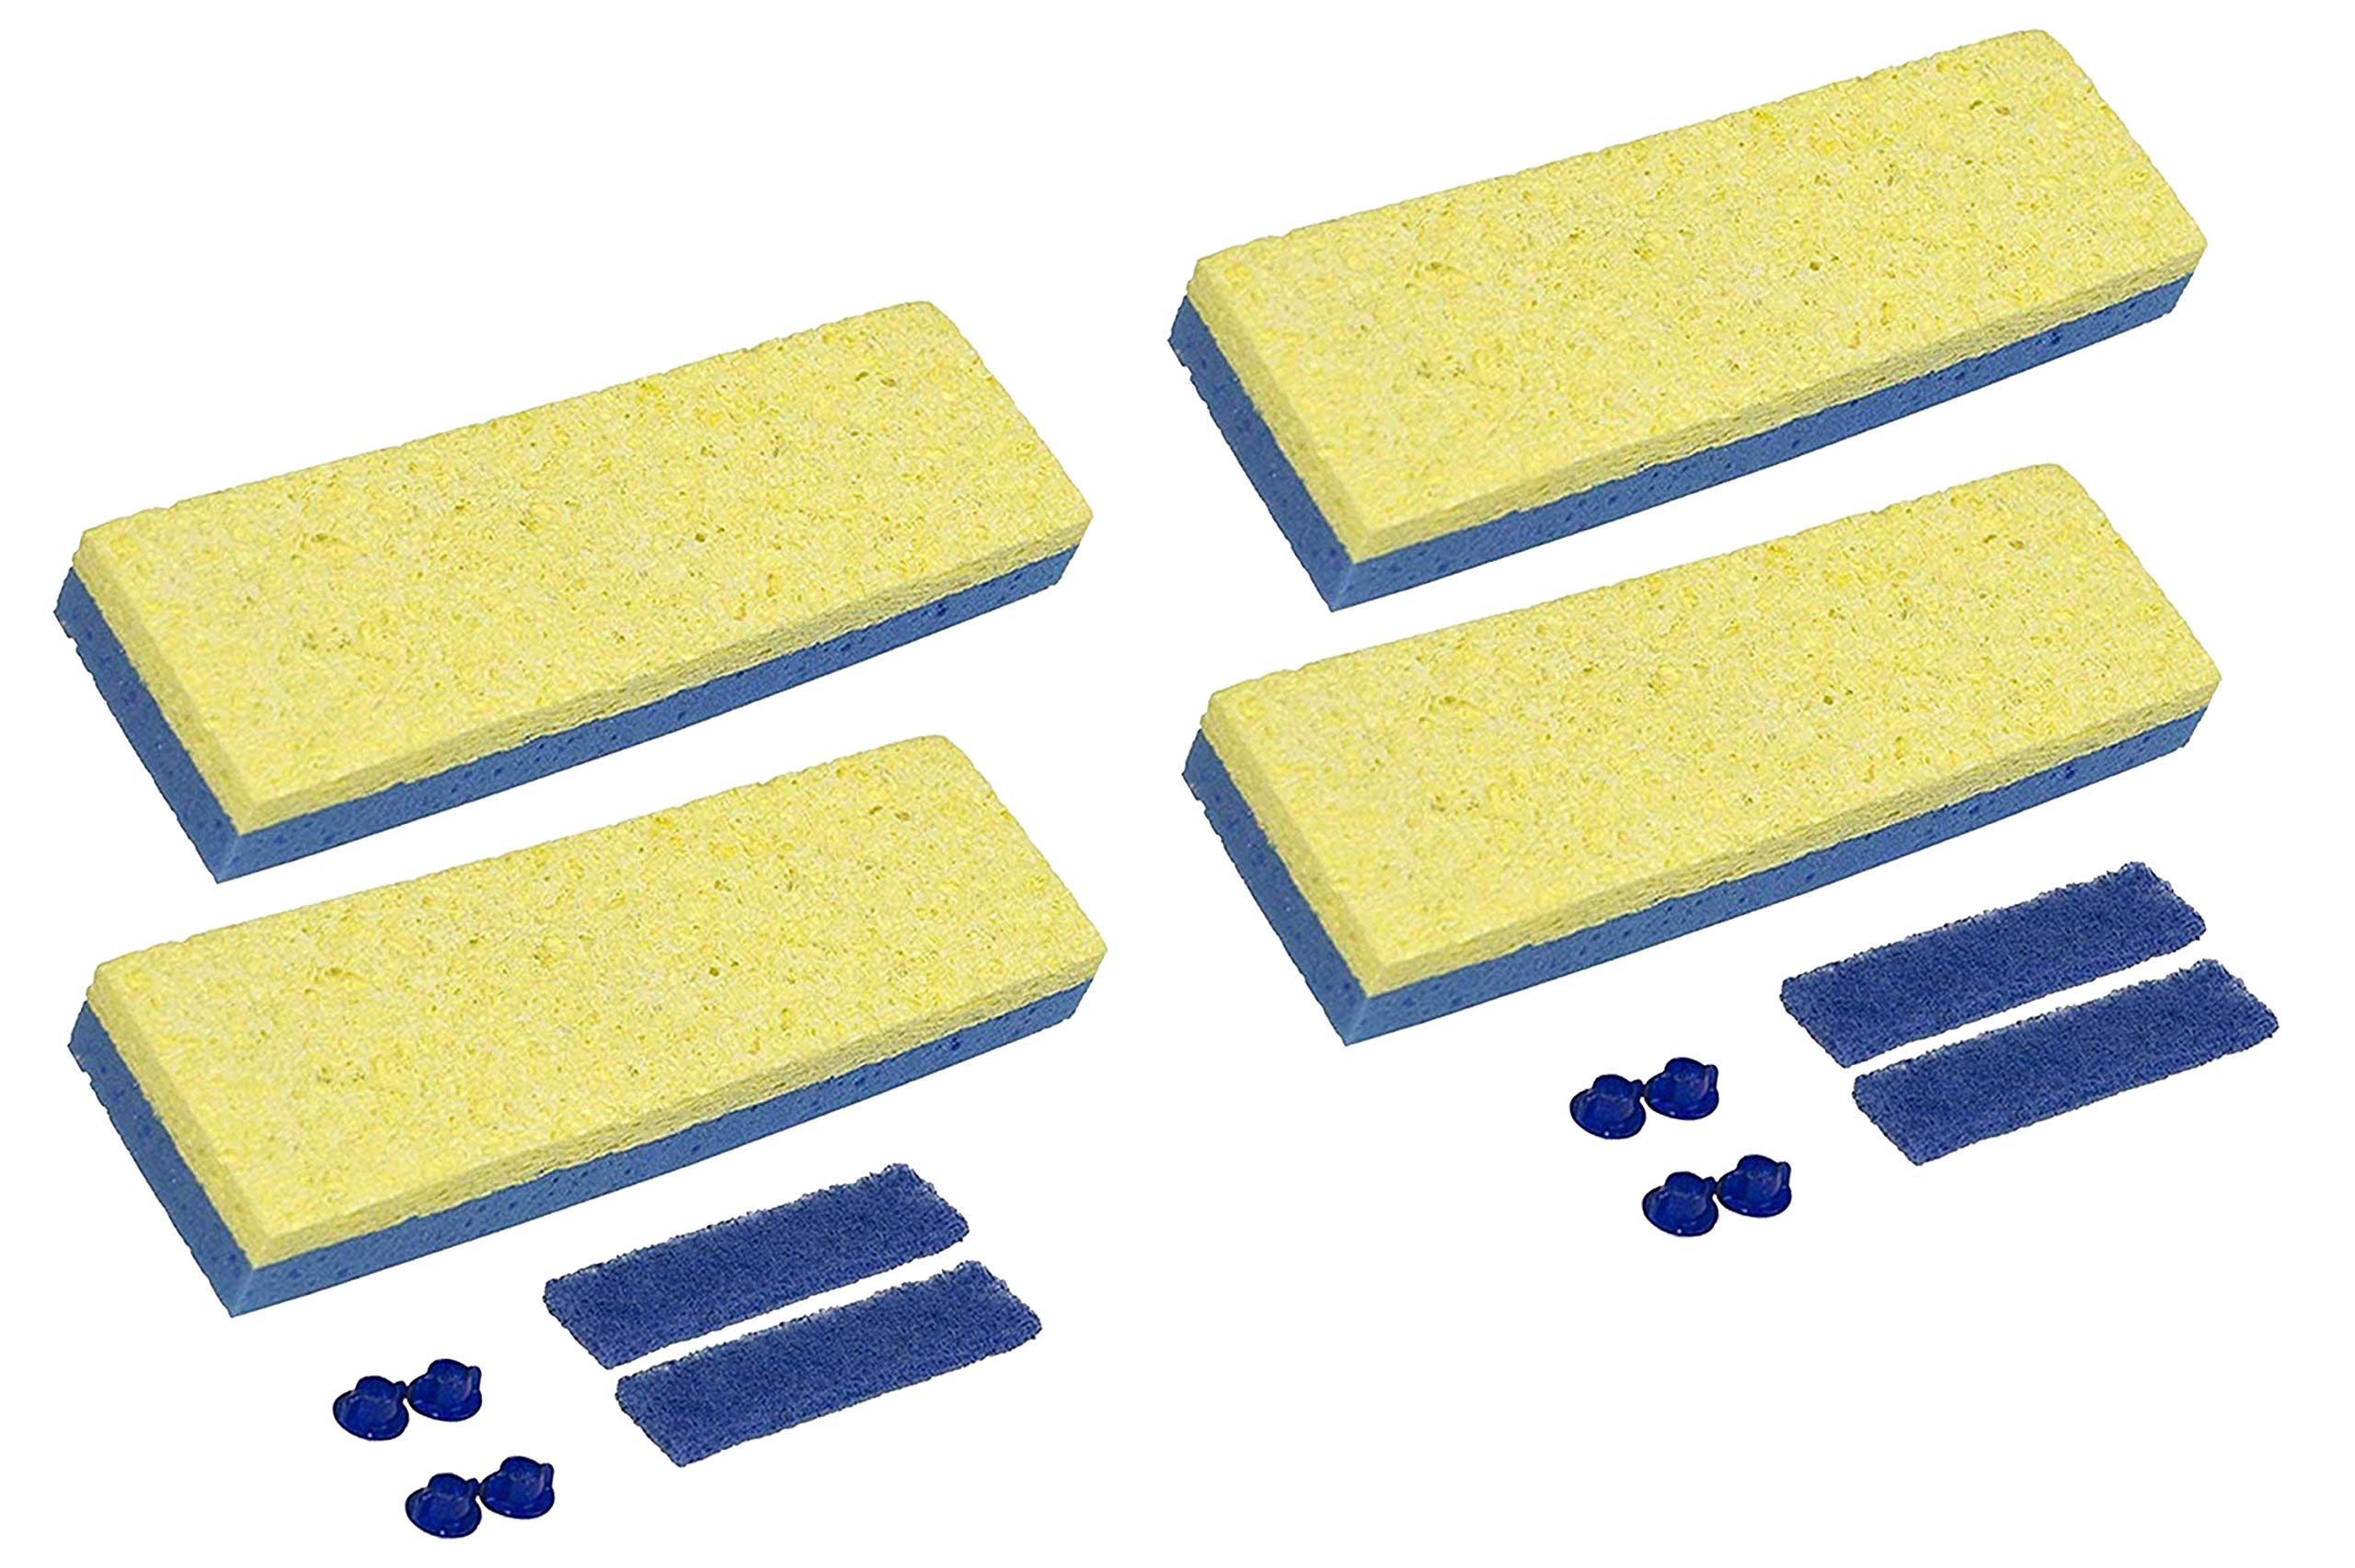 Quickie Sponge Mop Refill 3 '' X 9 '' type S - 4 Pack